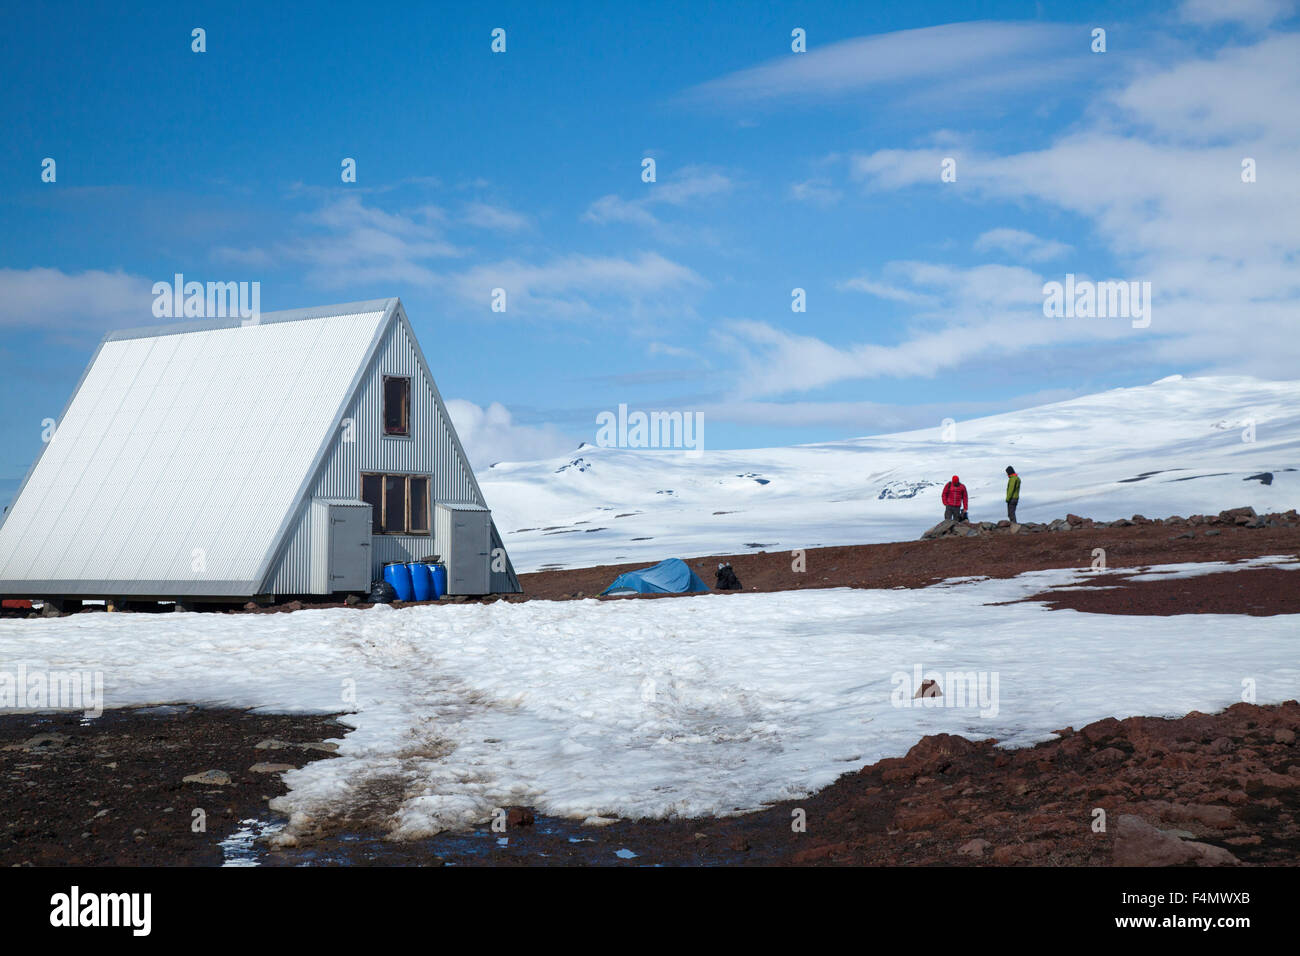 The new Baldvinsskali mountain hut on the Fimmvorduhals trail, Sudhurland, Iceland. - Stock Image